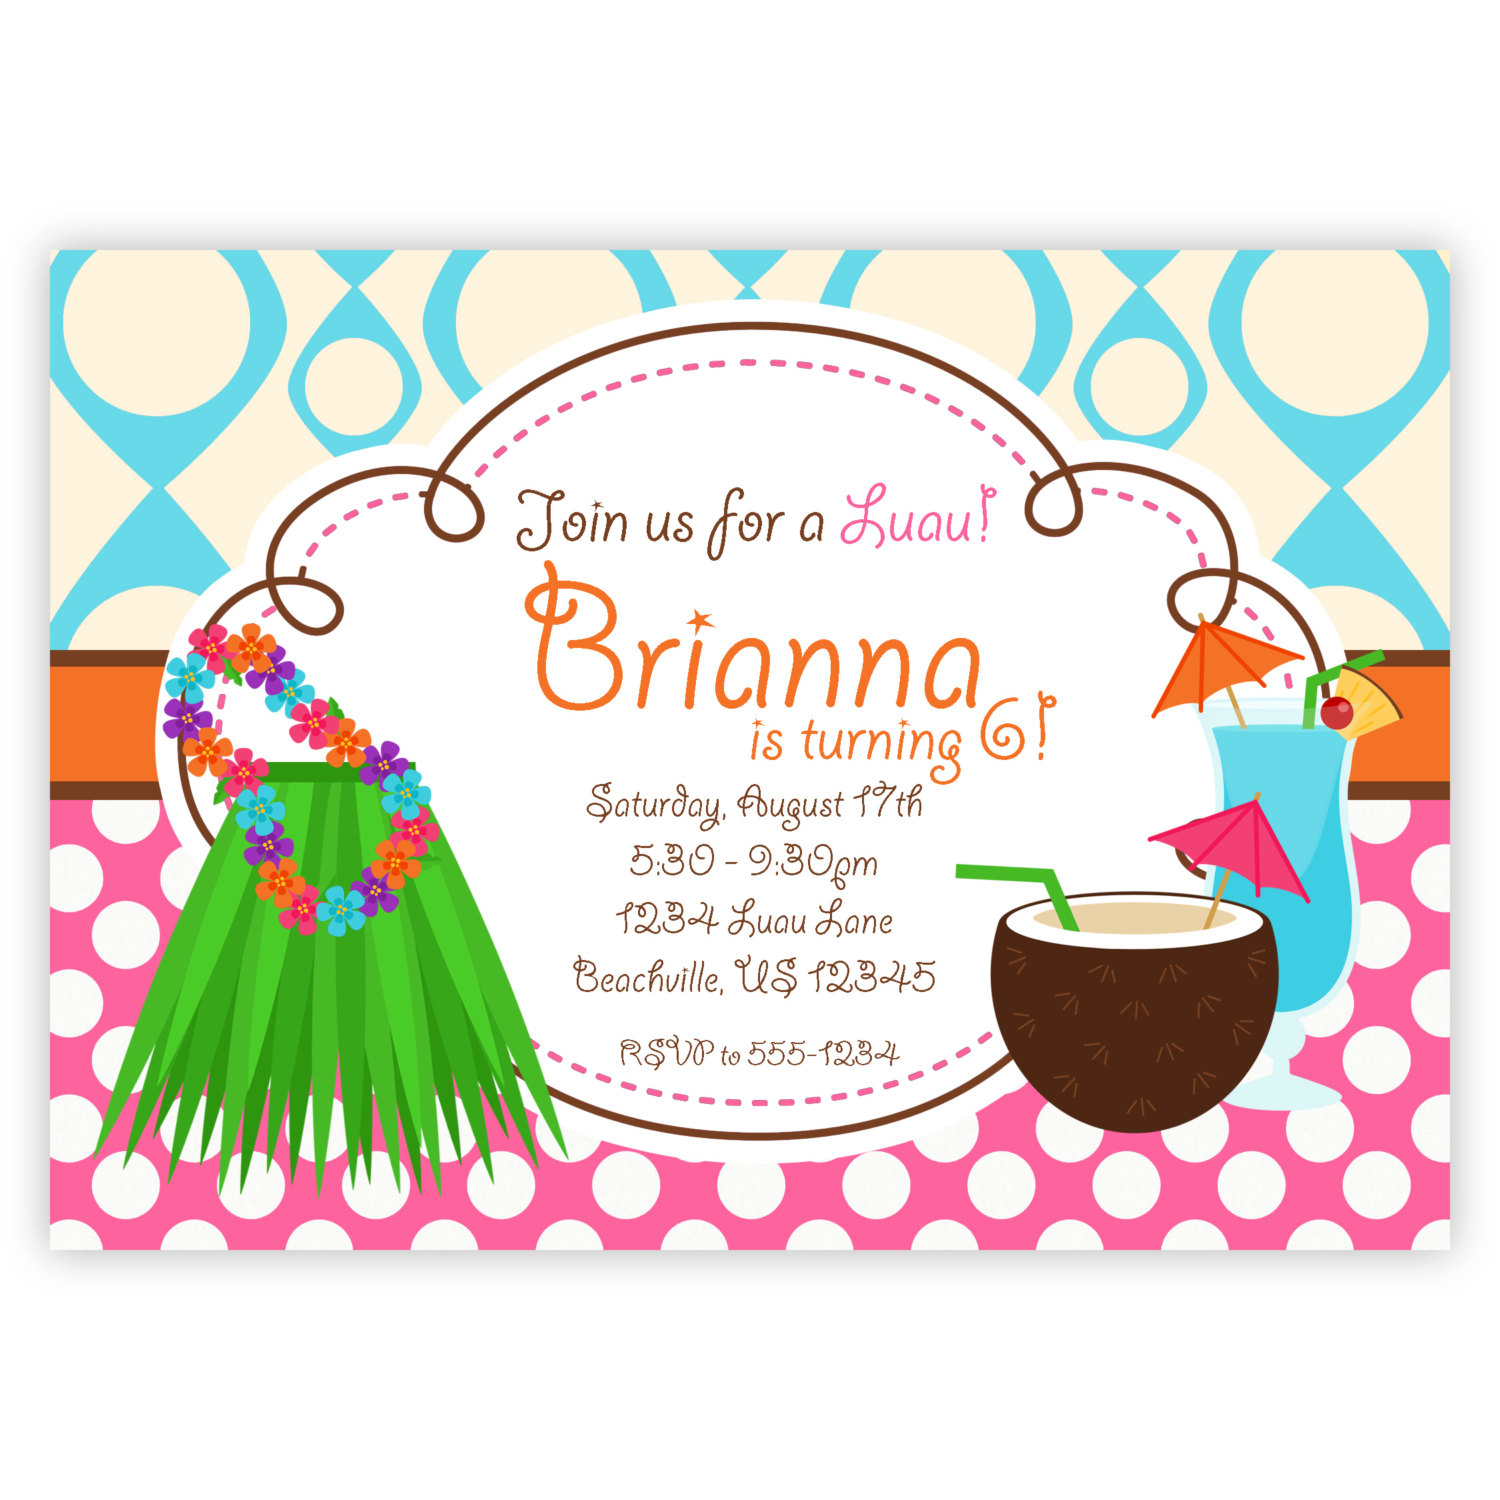 party invitation clipart clipart kid bbq party invitation templates clipart panda clipart